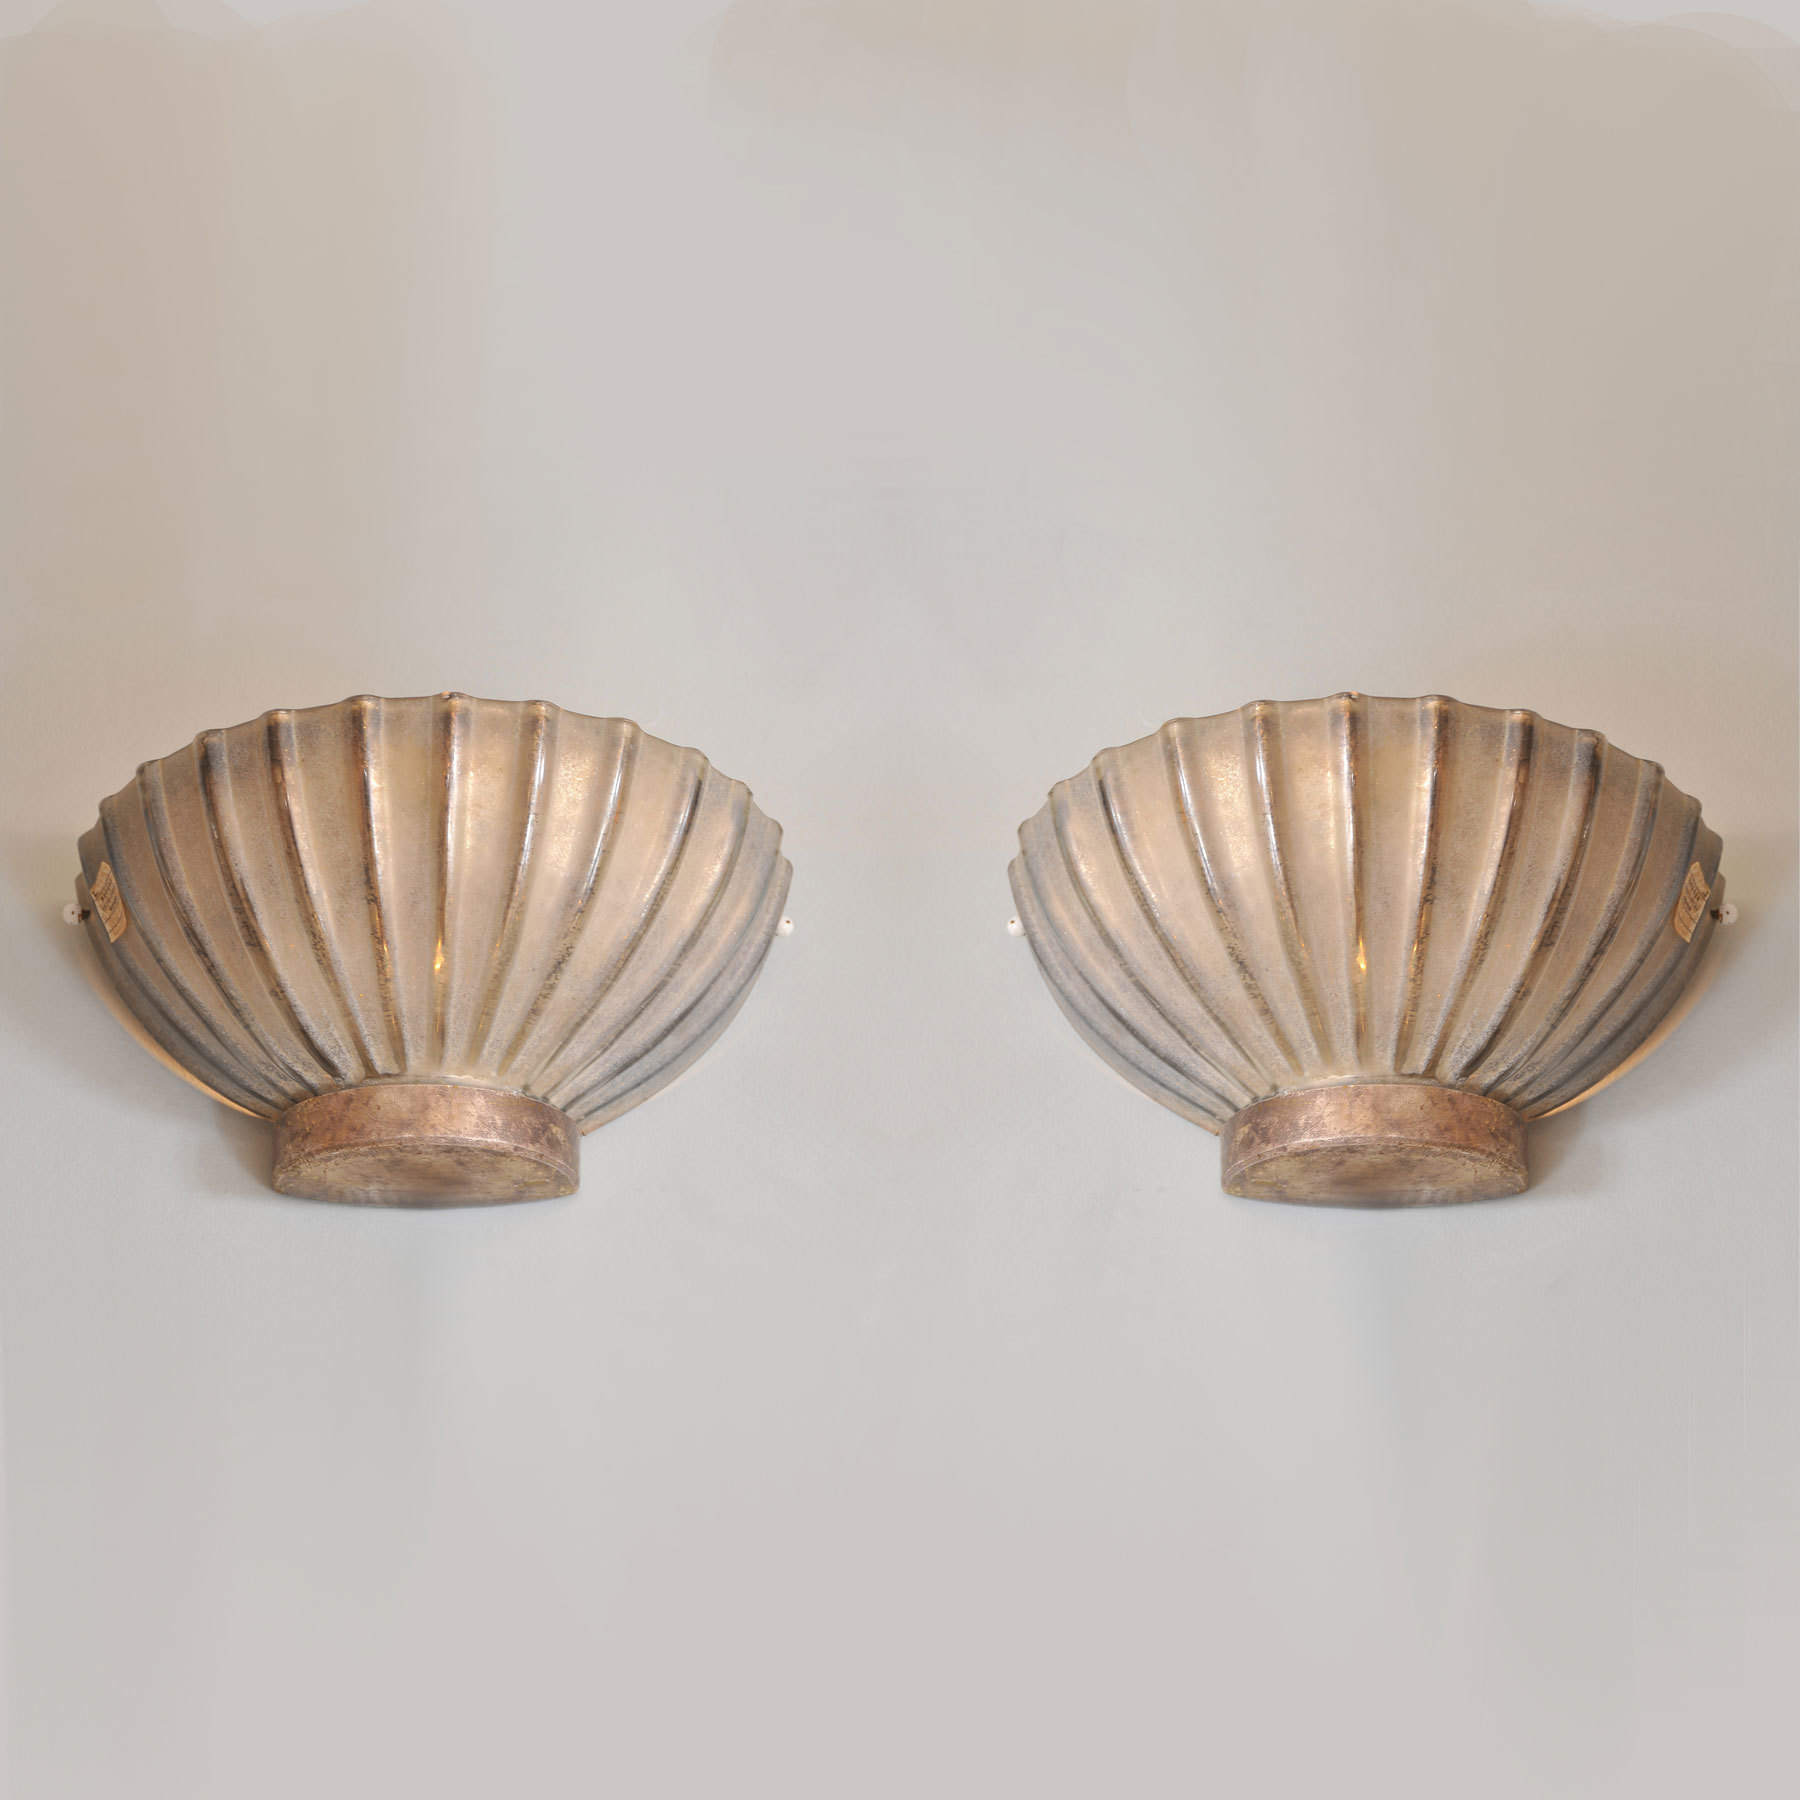 Italian 1960s scallop shell wall lights by seguso vetri valerie wade italian 1960s scallop shell wall lights by seguso vetri darte mozeypictures